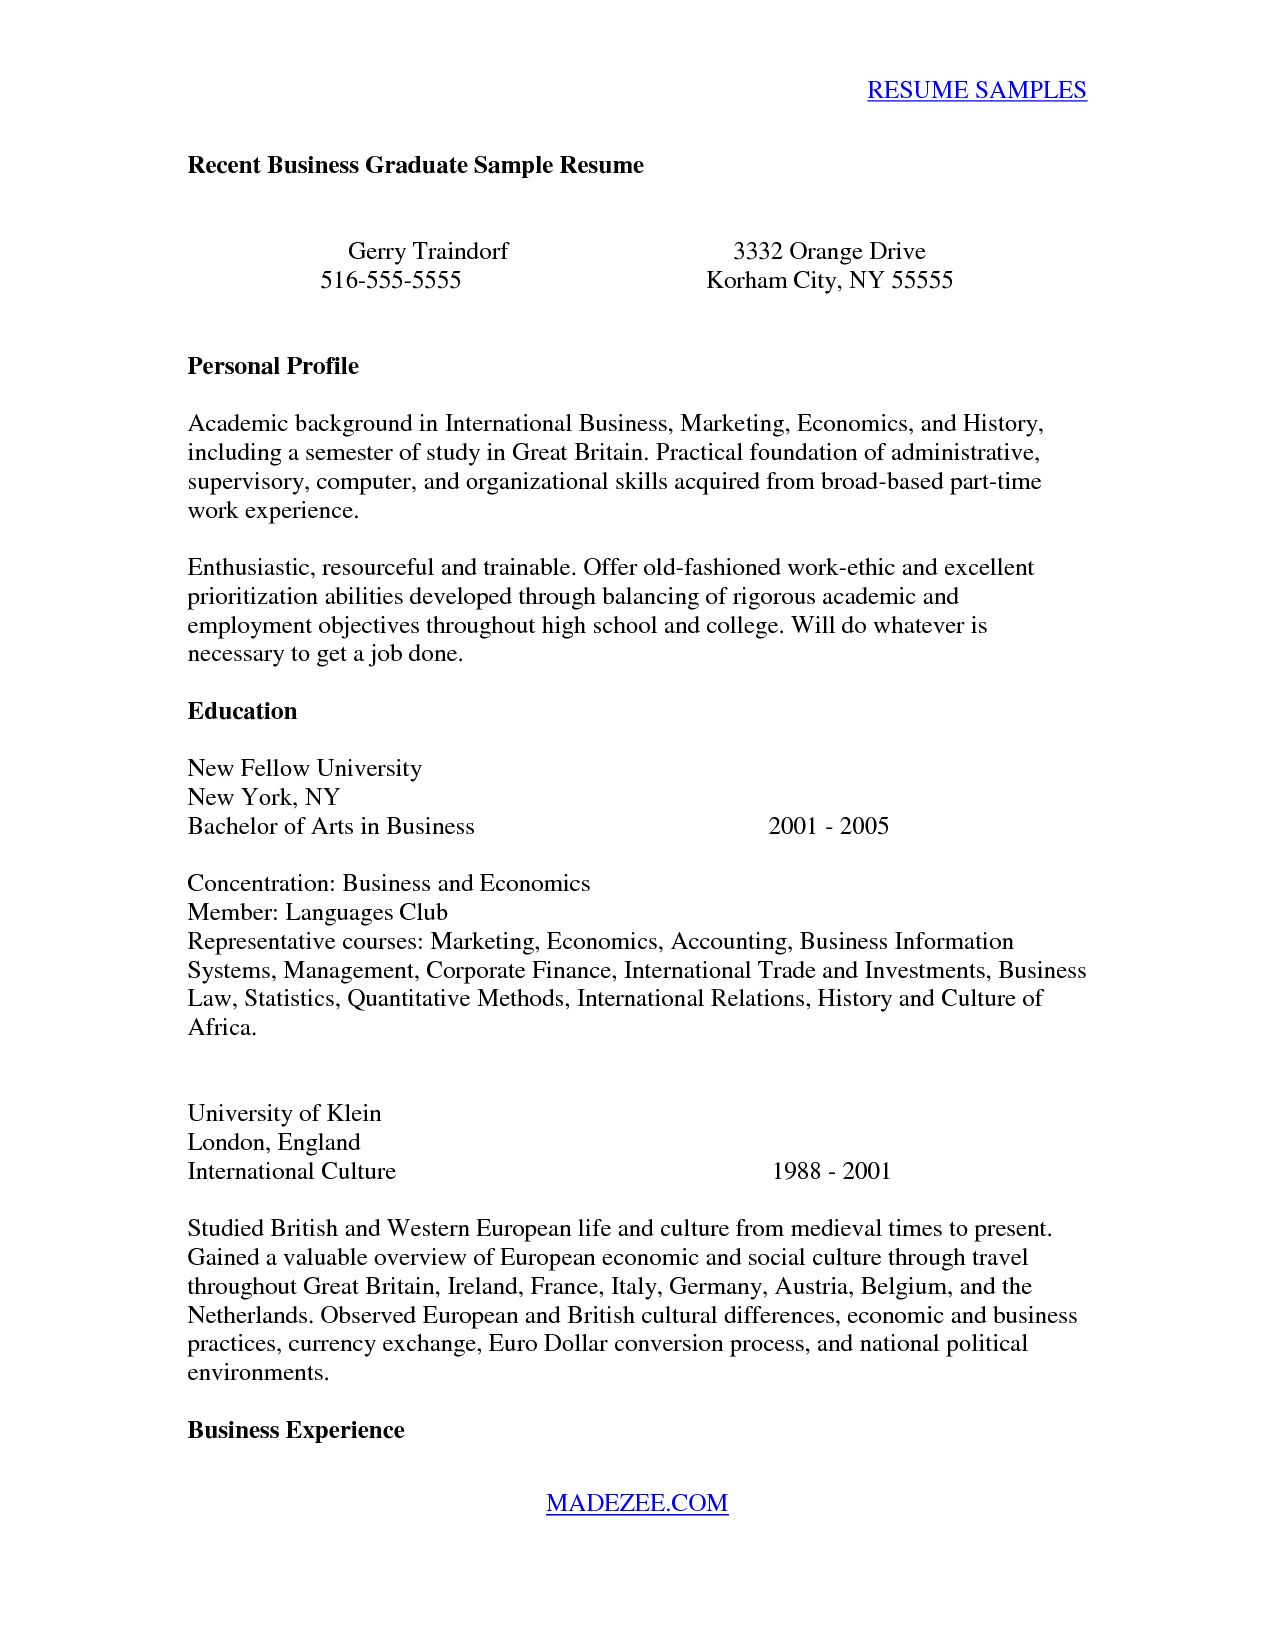 27+ Recent Graduate Cover Letter Job resume examples